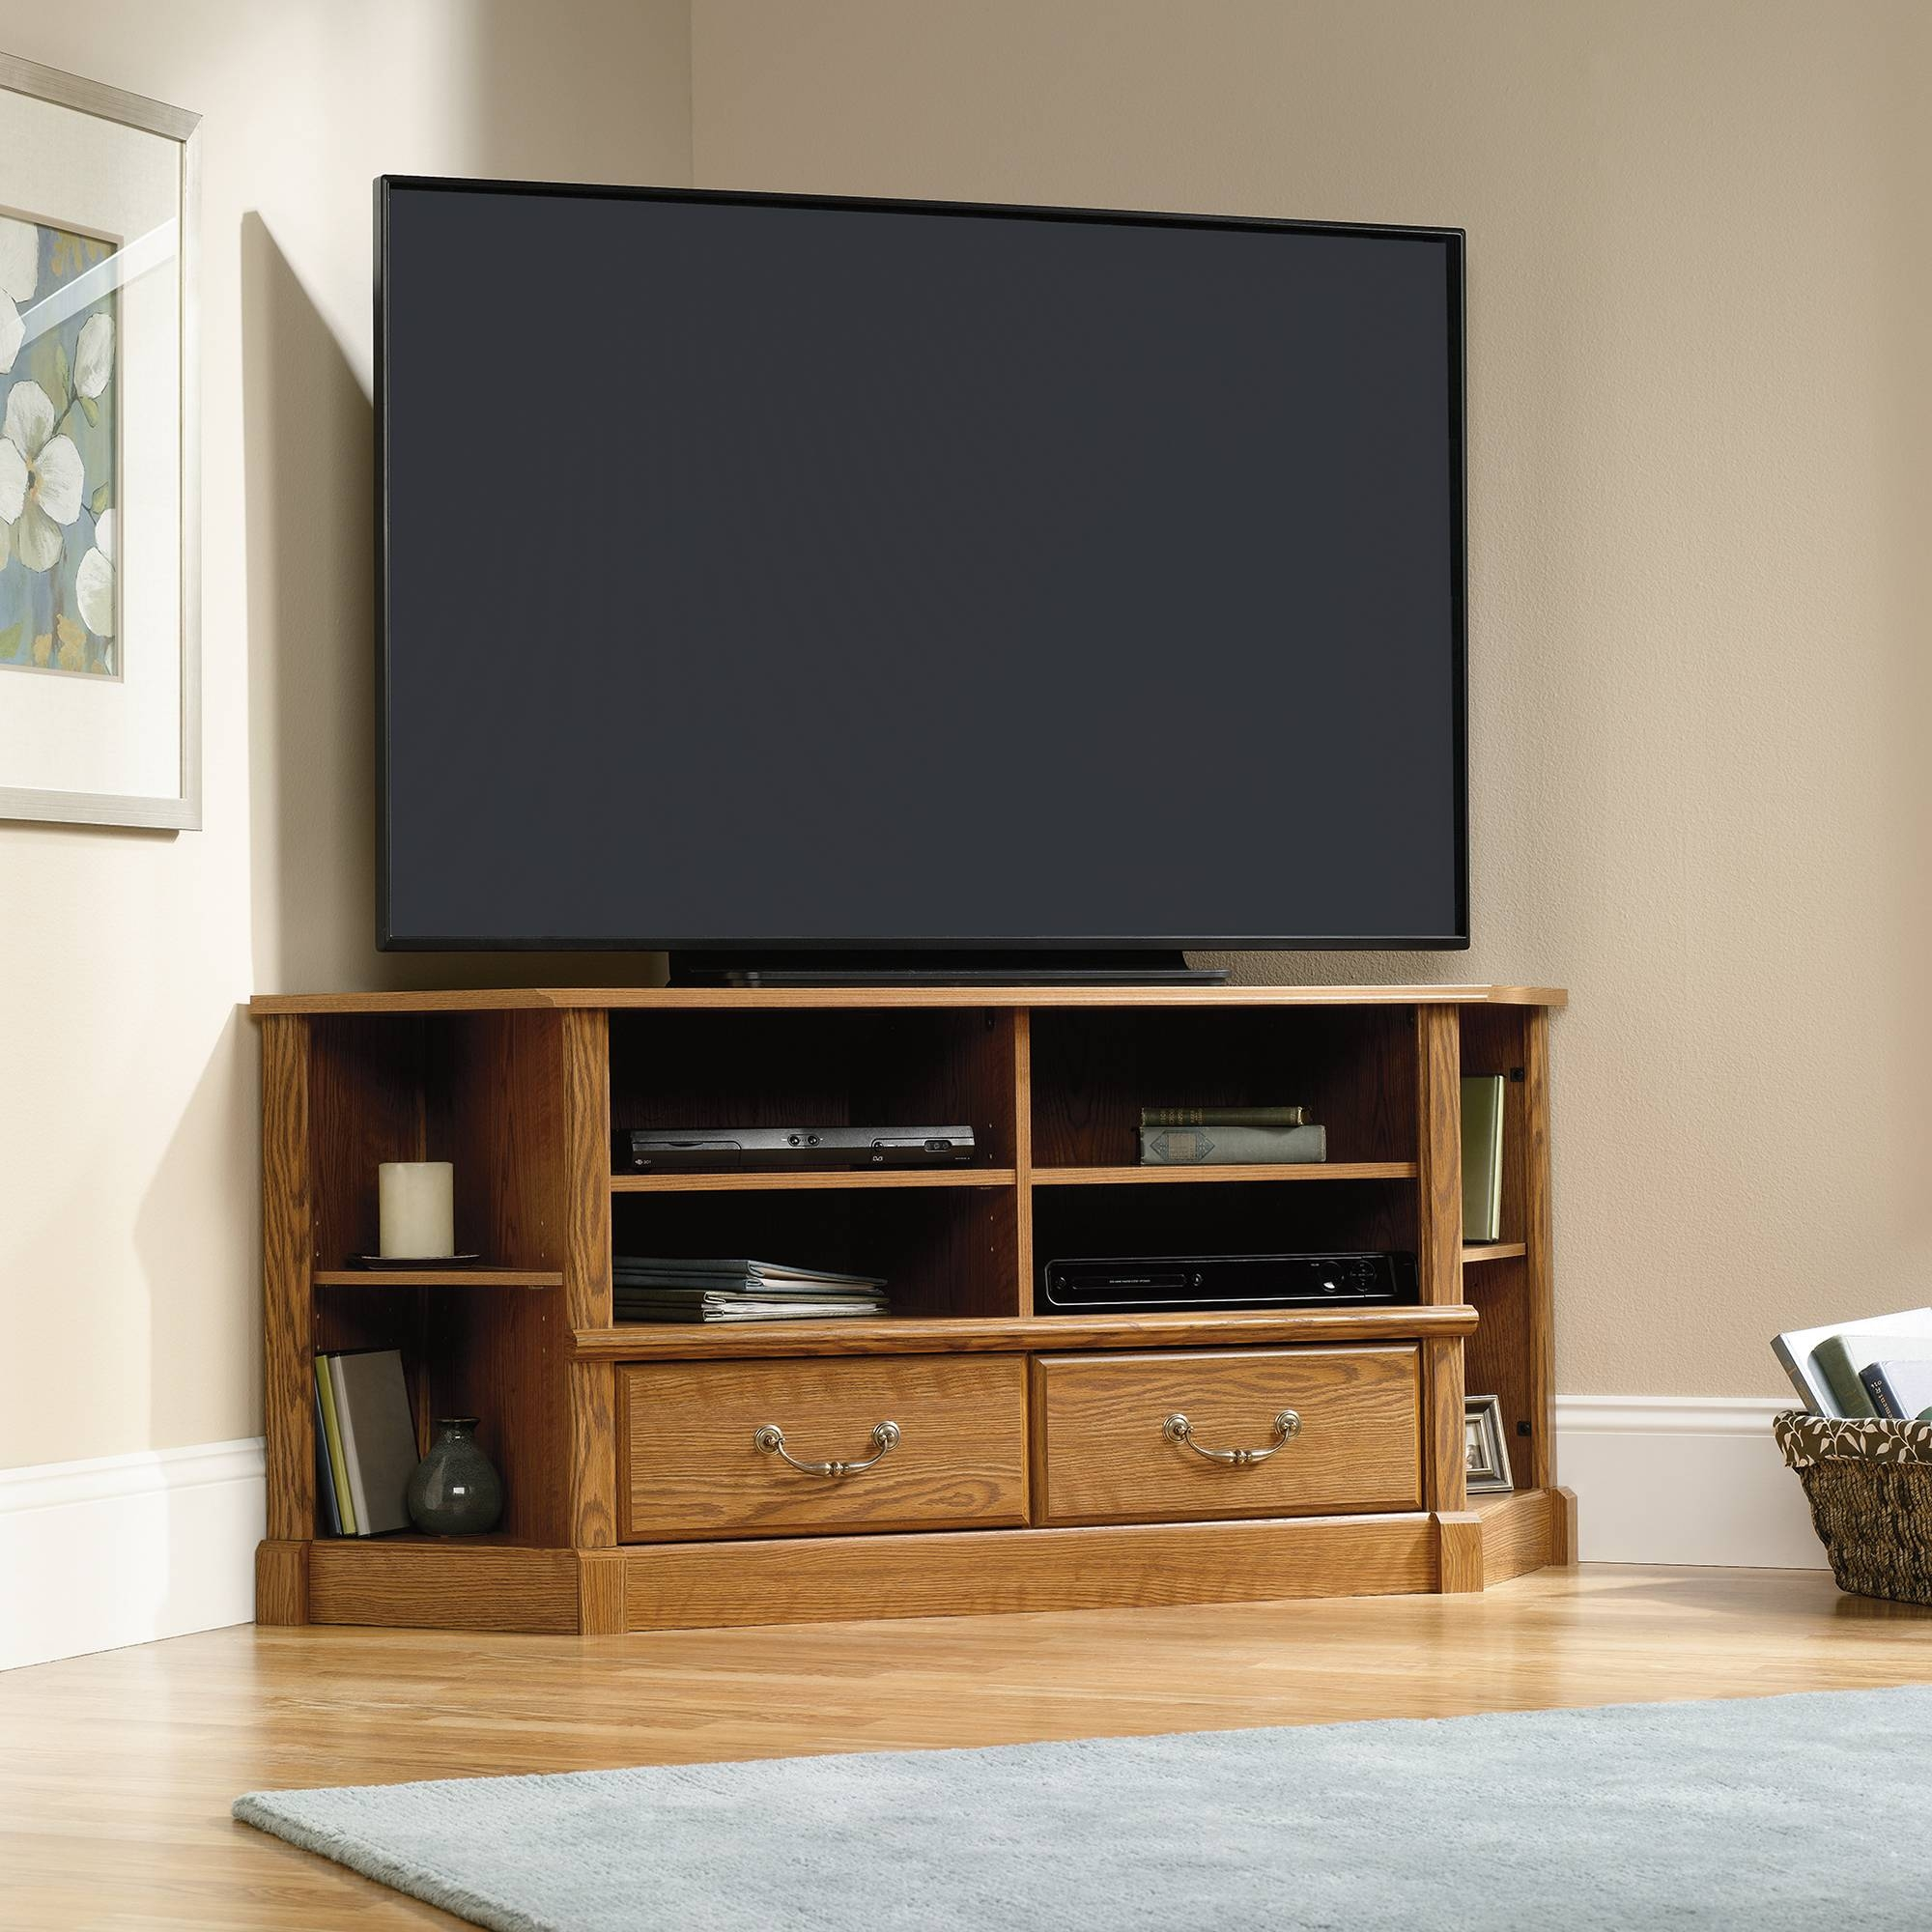 Orchard Hills | Corner Entertainment Credenza | 403818 | Sauder intended for Corner Tv Stands For 60 Inch Tv (Image 11 of 15)